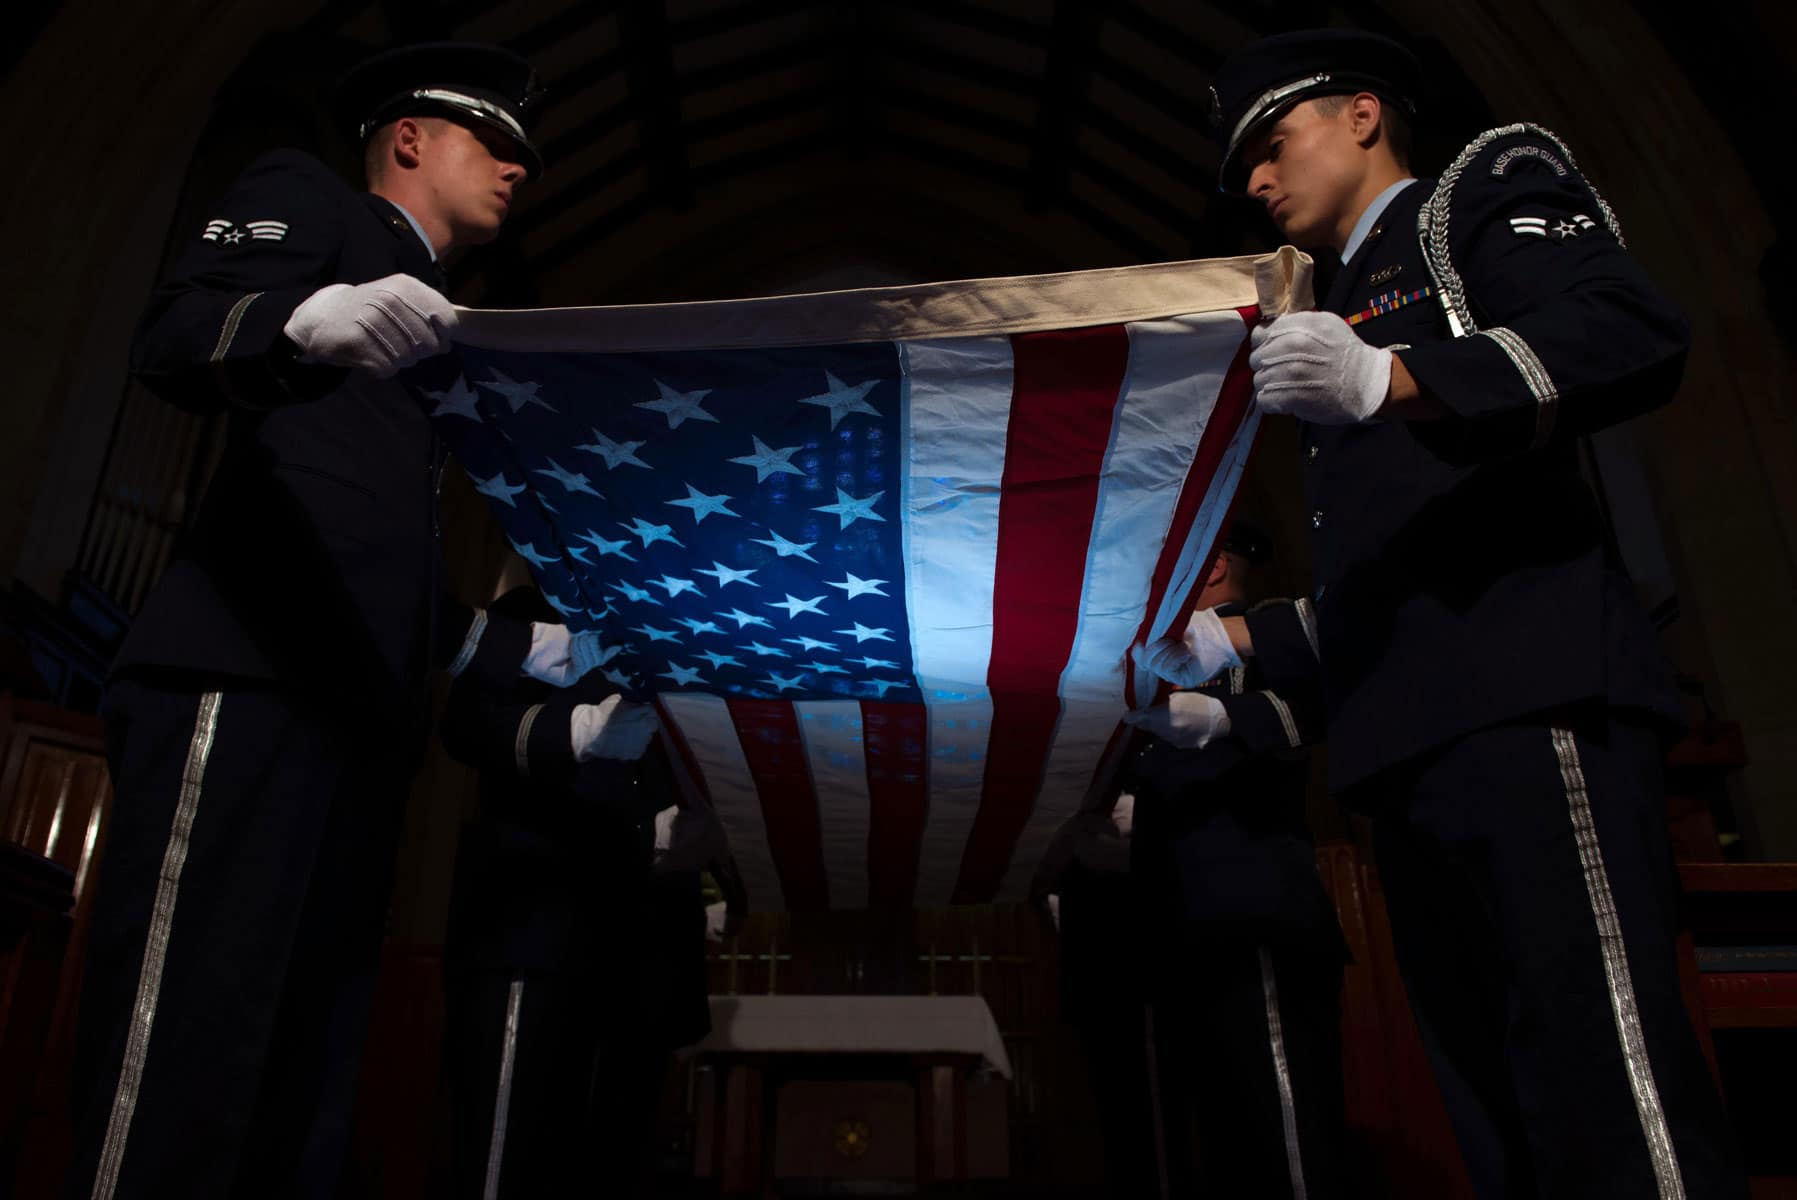 Air Force service members, assigned to the base Honor Guard, perform a flag folding ceremony at Joint Base Langley-Eustis, Va. The Old Glory flag folding ceremony is a time honored tradition that is used during Memorial Day and Veterans Day ceremonies, as well as retirements from the Armed Forces.